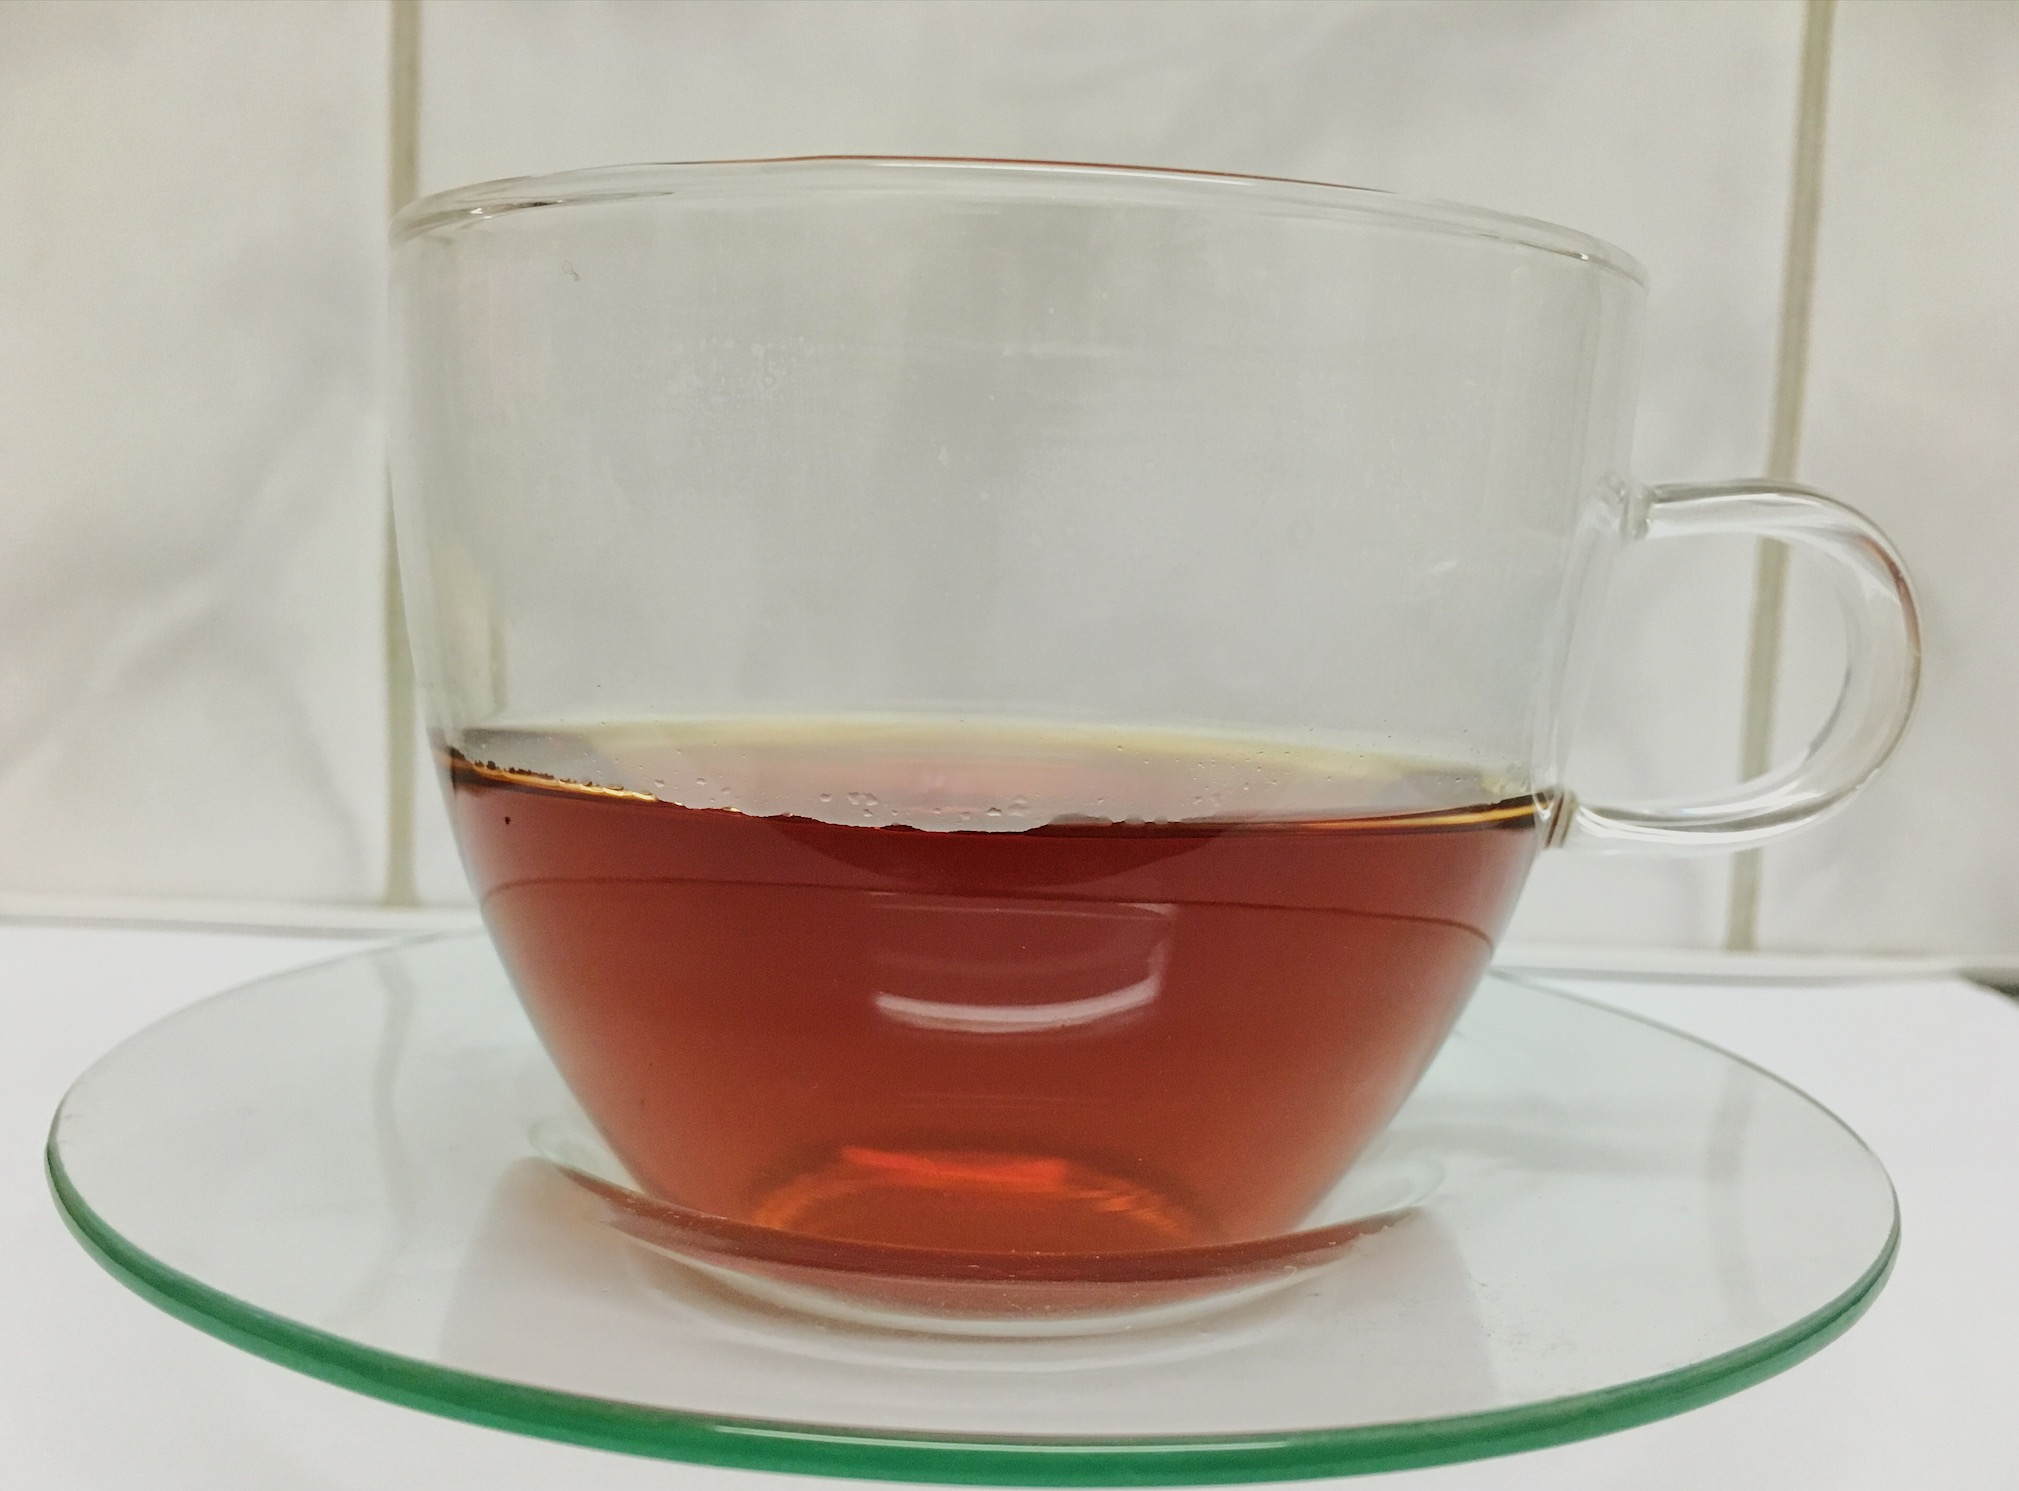 Brewed tea in a glass cup and saucer